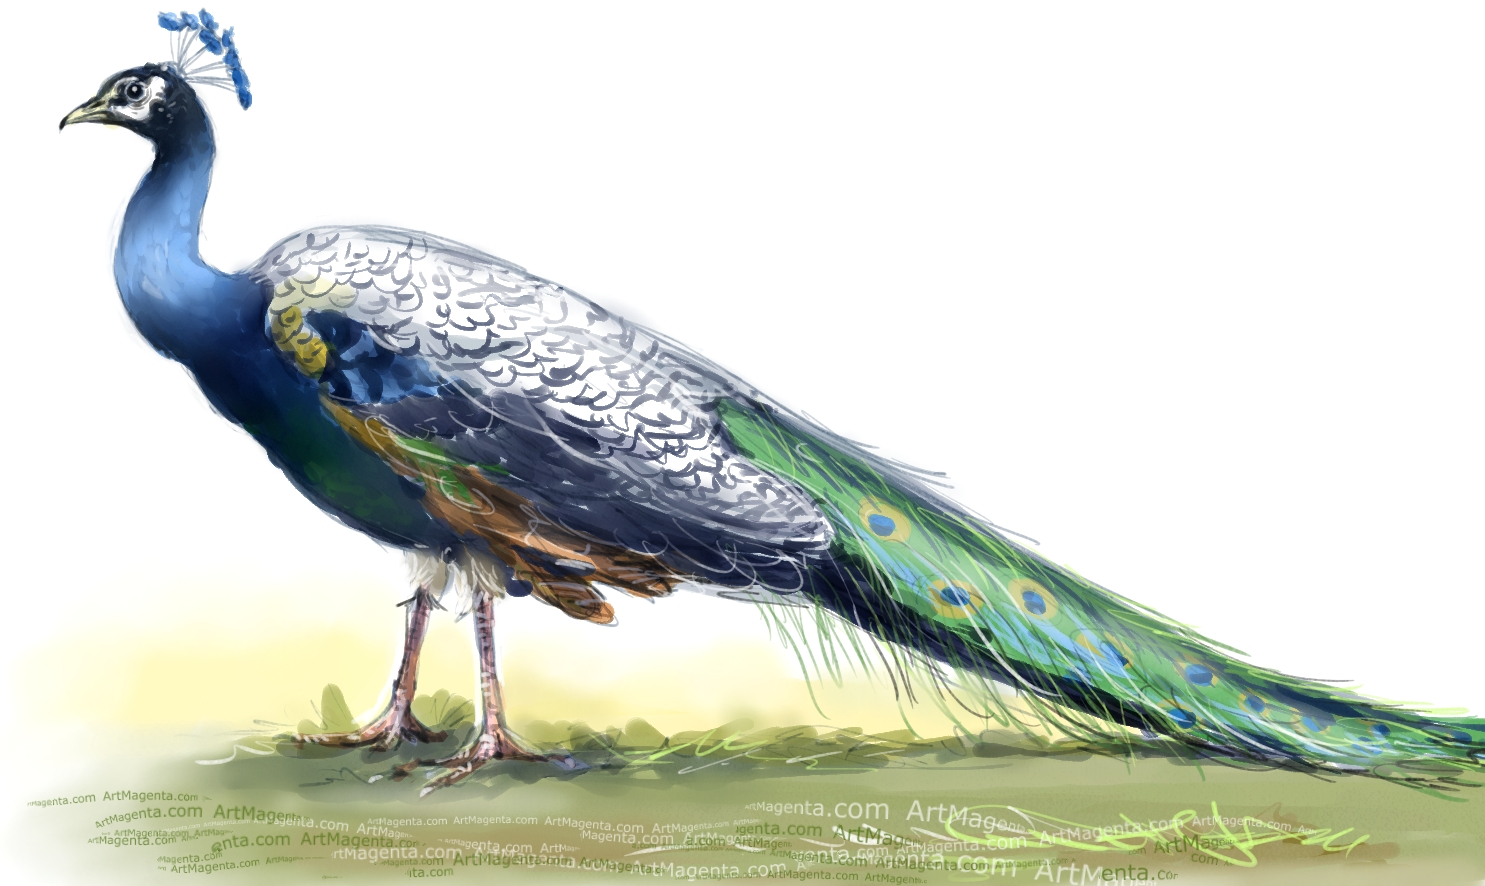 Indian Peafowl sketch painting. Bird art drawing by illustrator Artmagenta